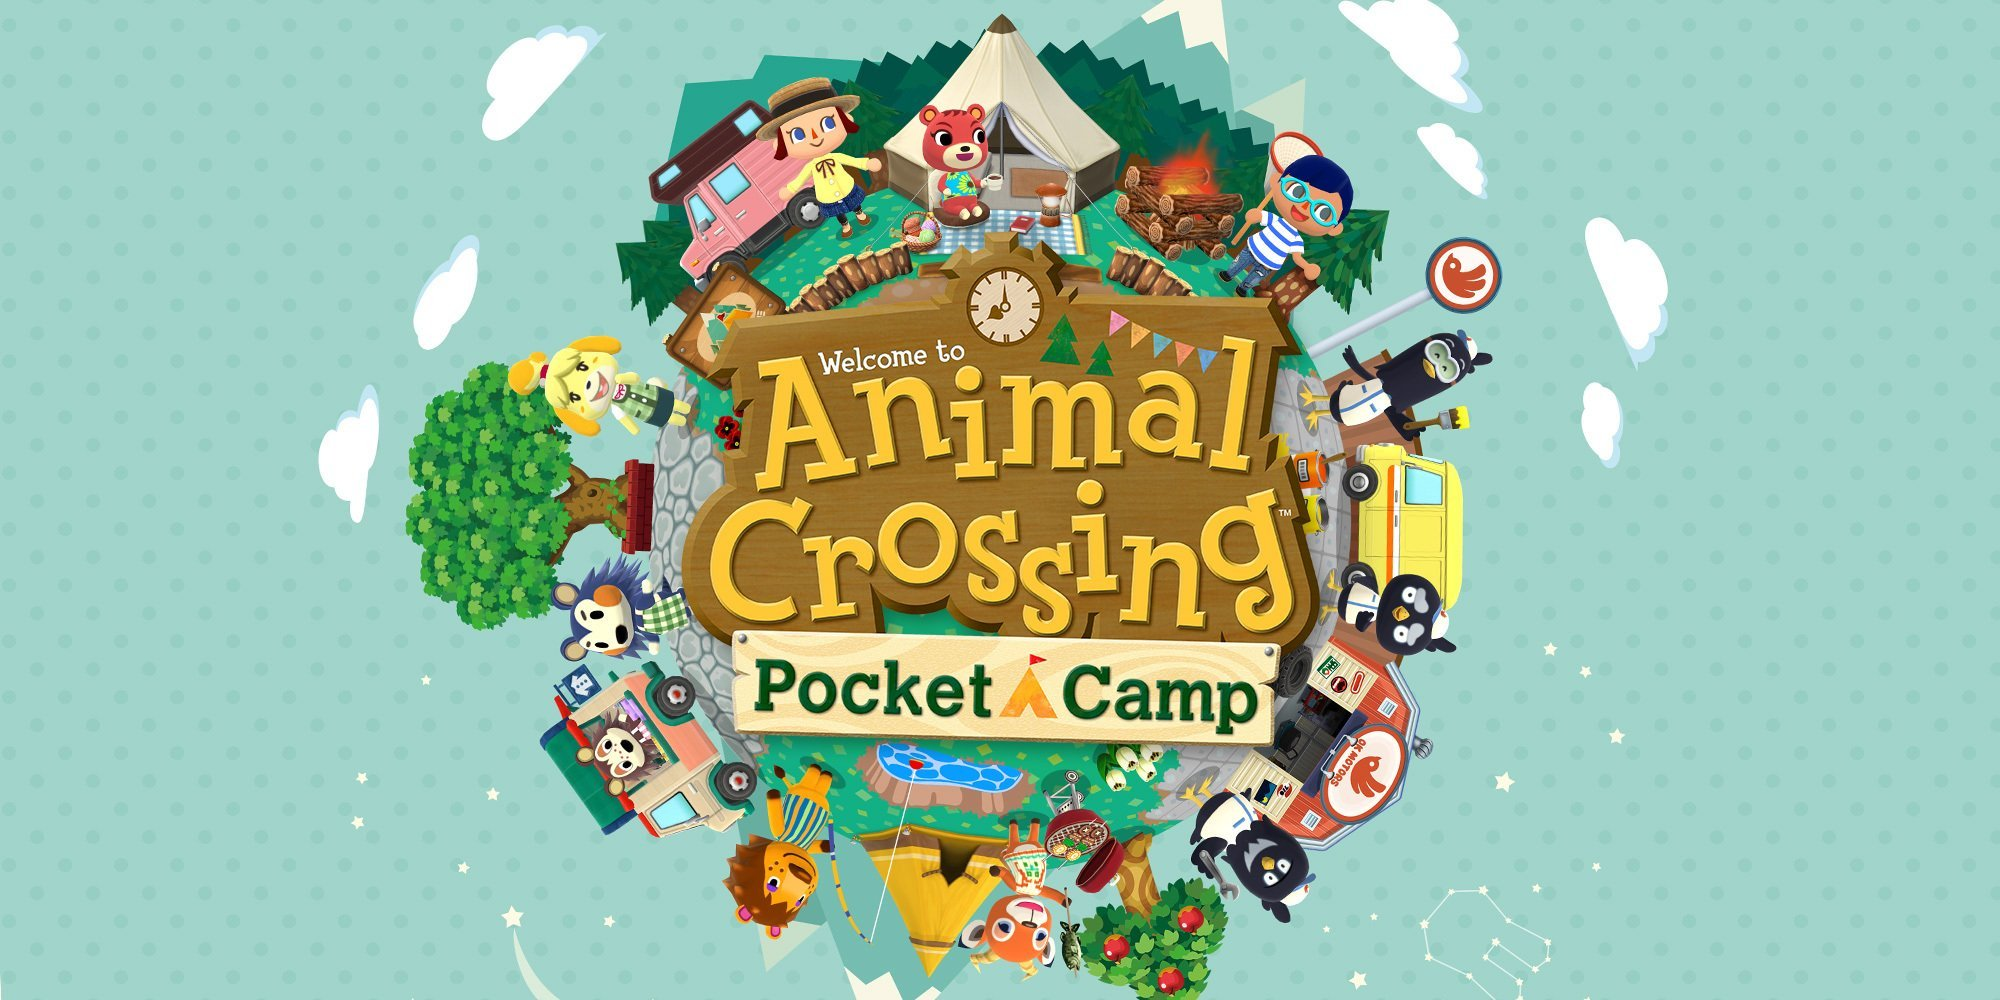 jaquette du jeu vidéo Animal Crossing : Pocket Camp